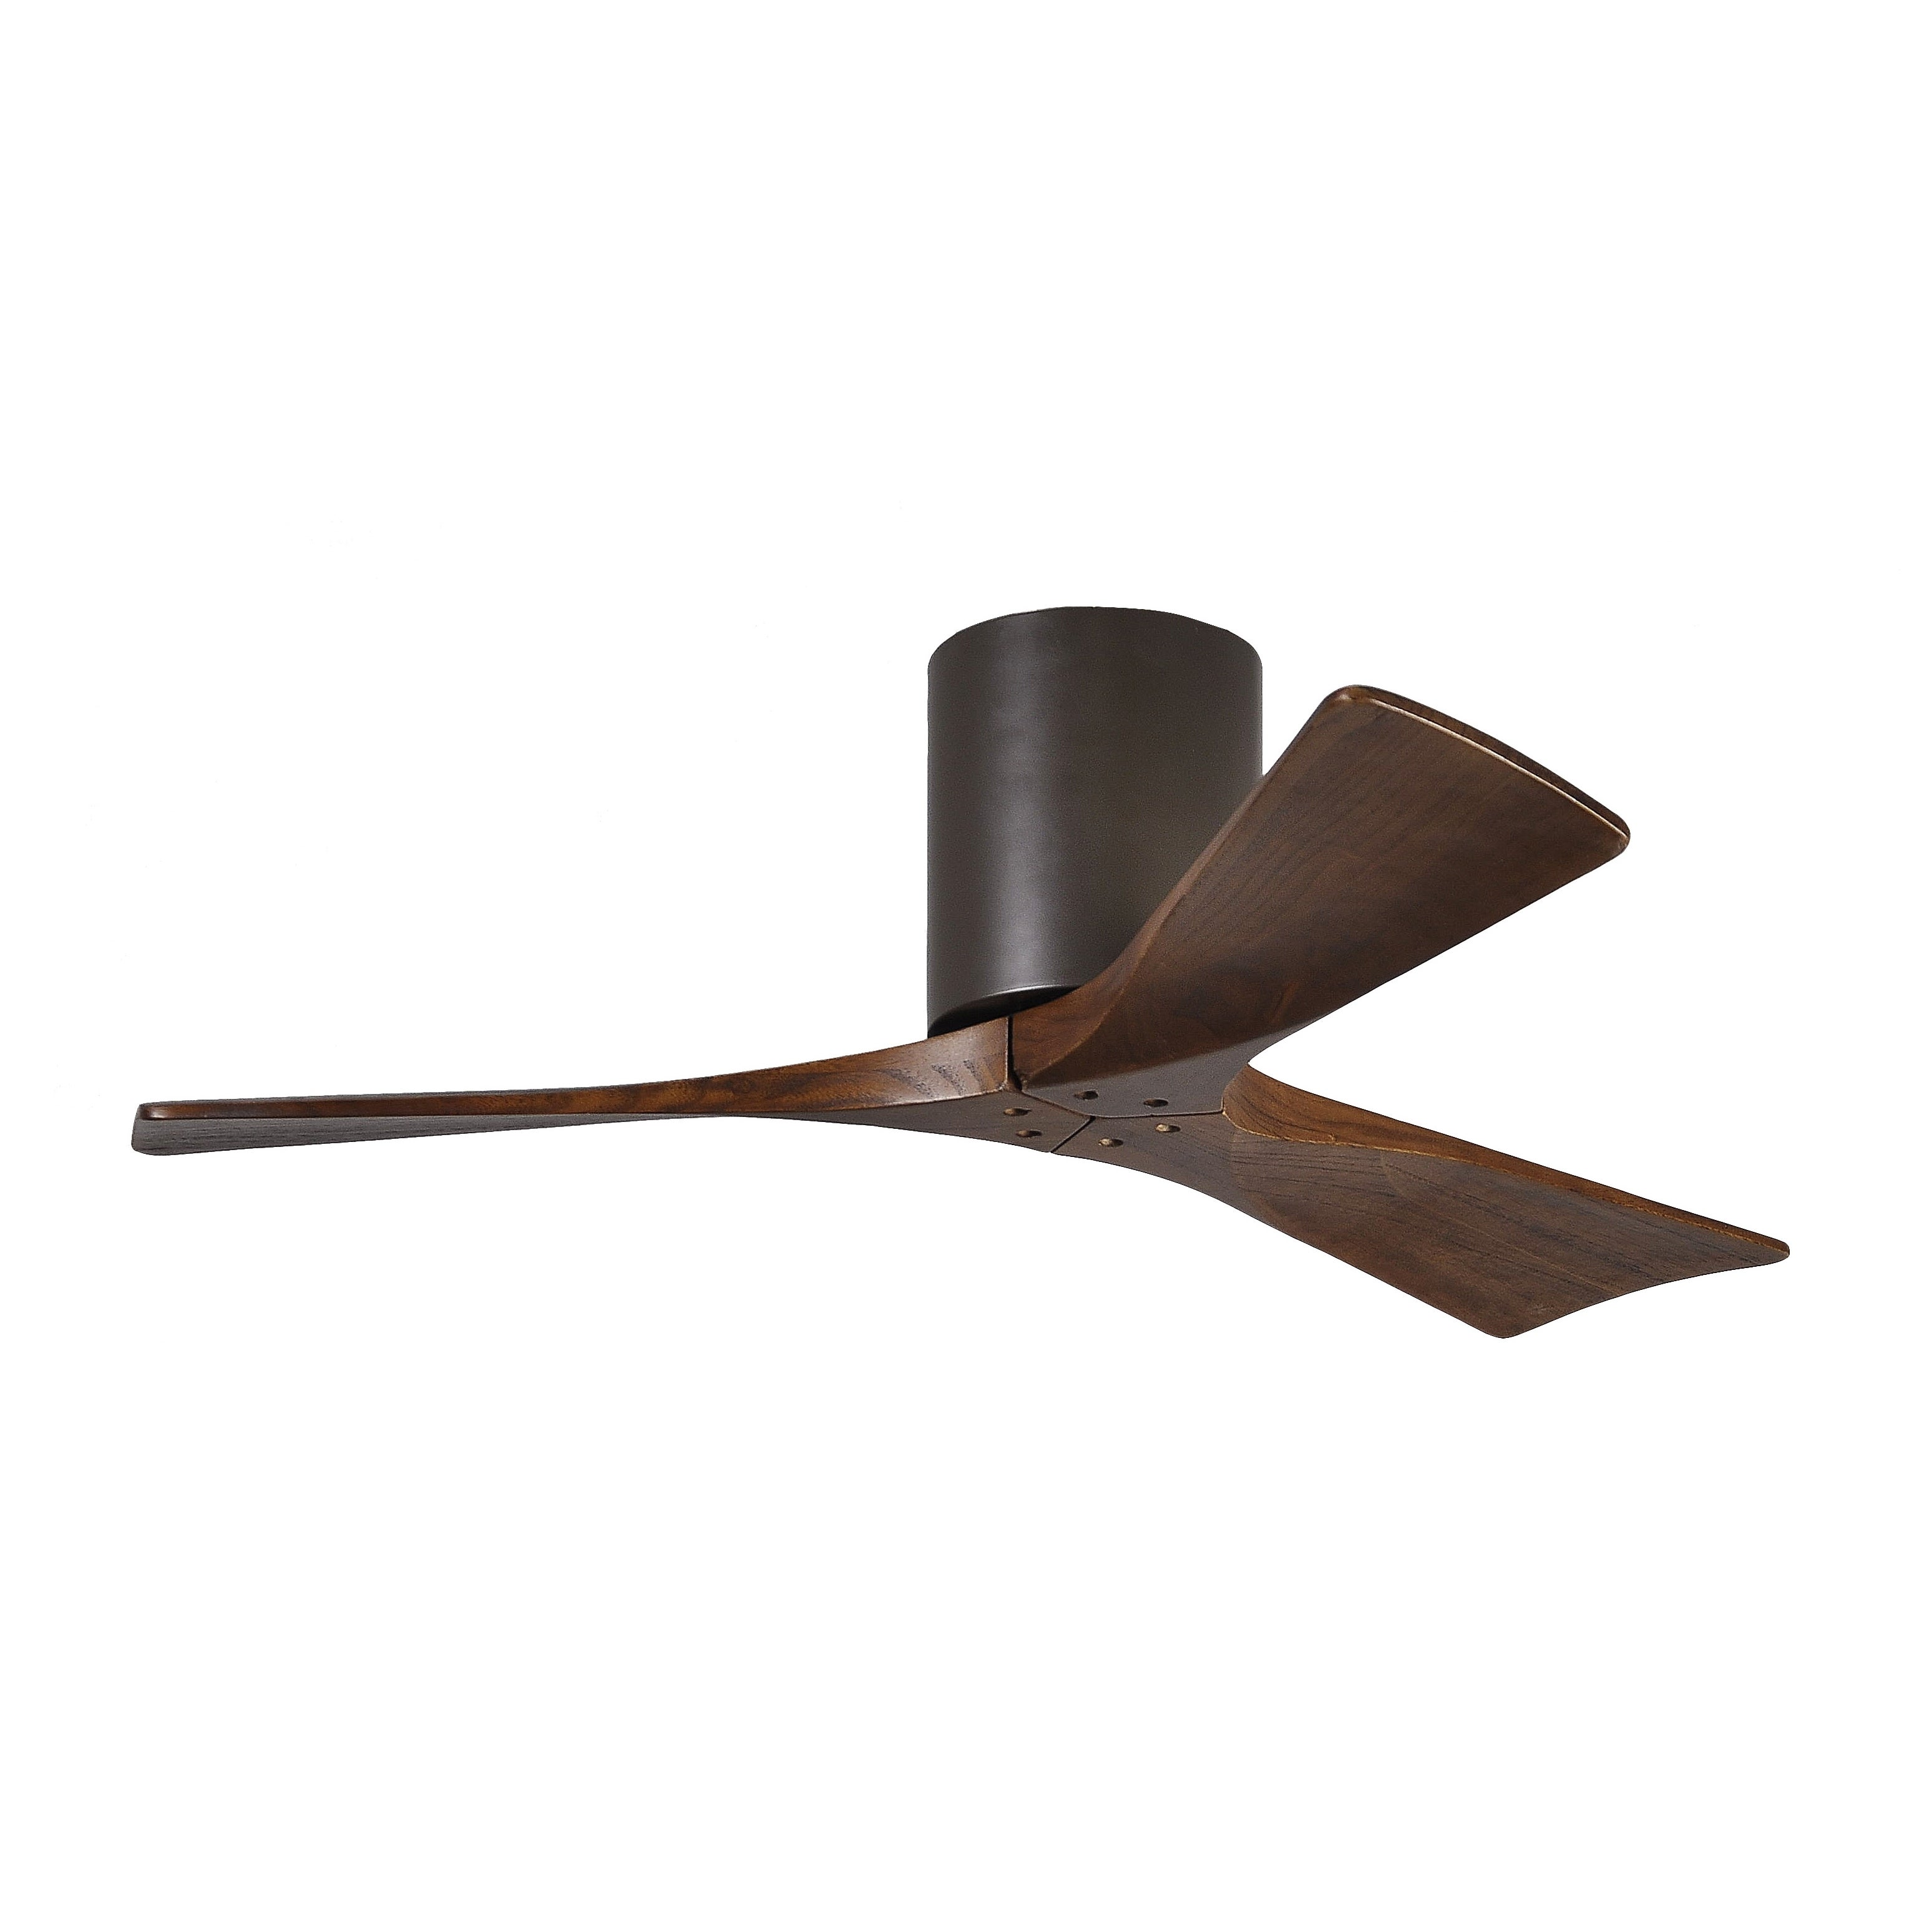 Matthews fan company irene 3 hugger 42 inch 3 blade ceiling fan picture 5 of 8 aloadofball Image collections